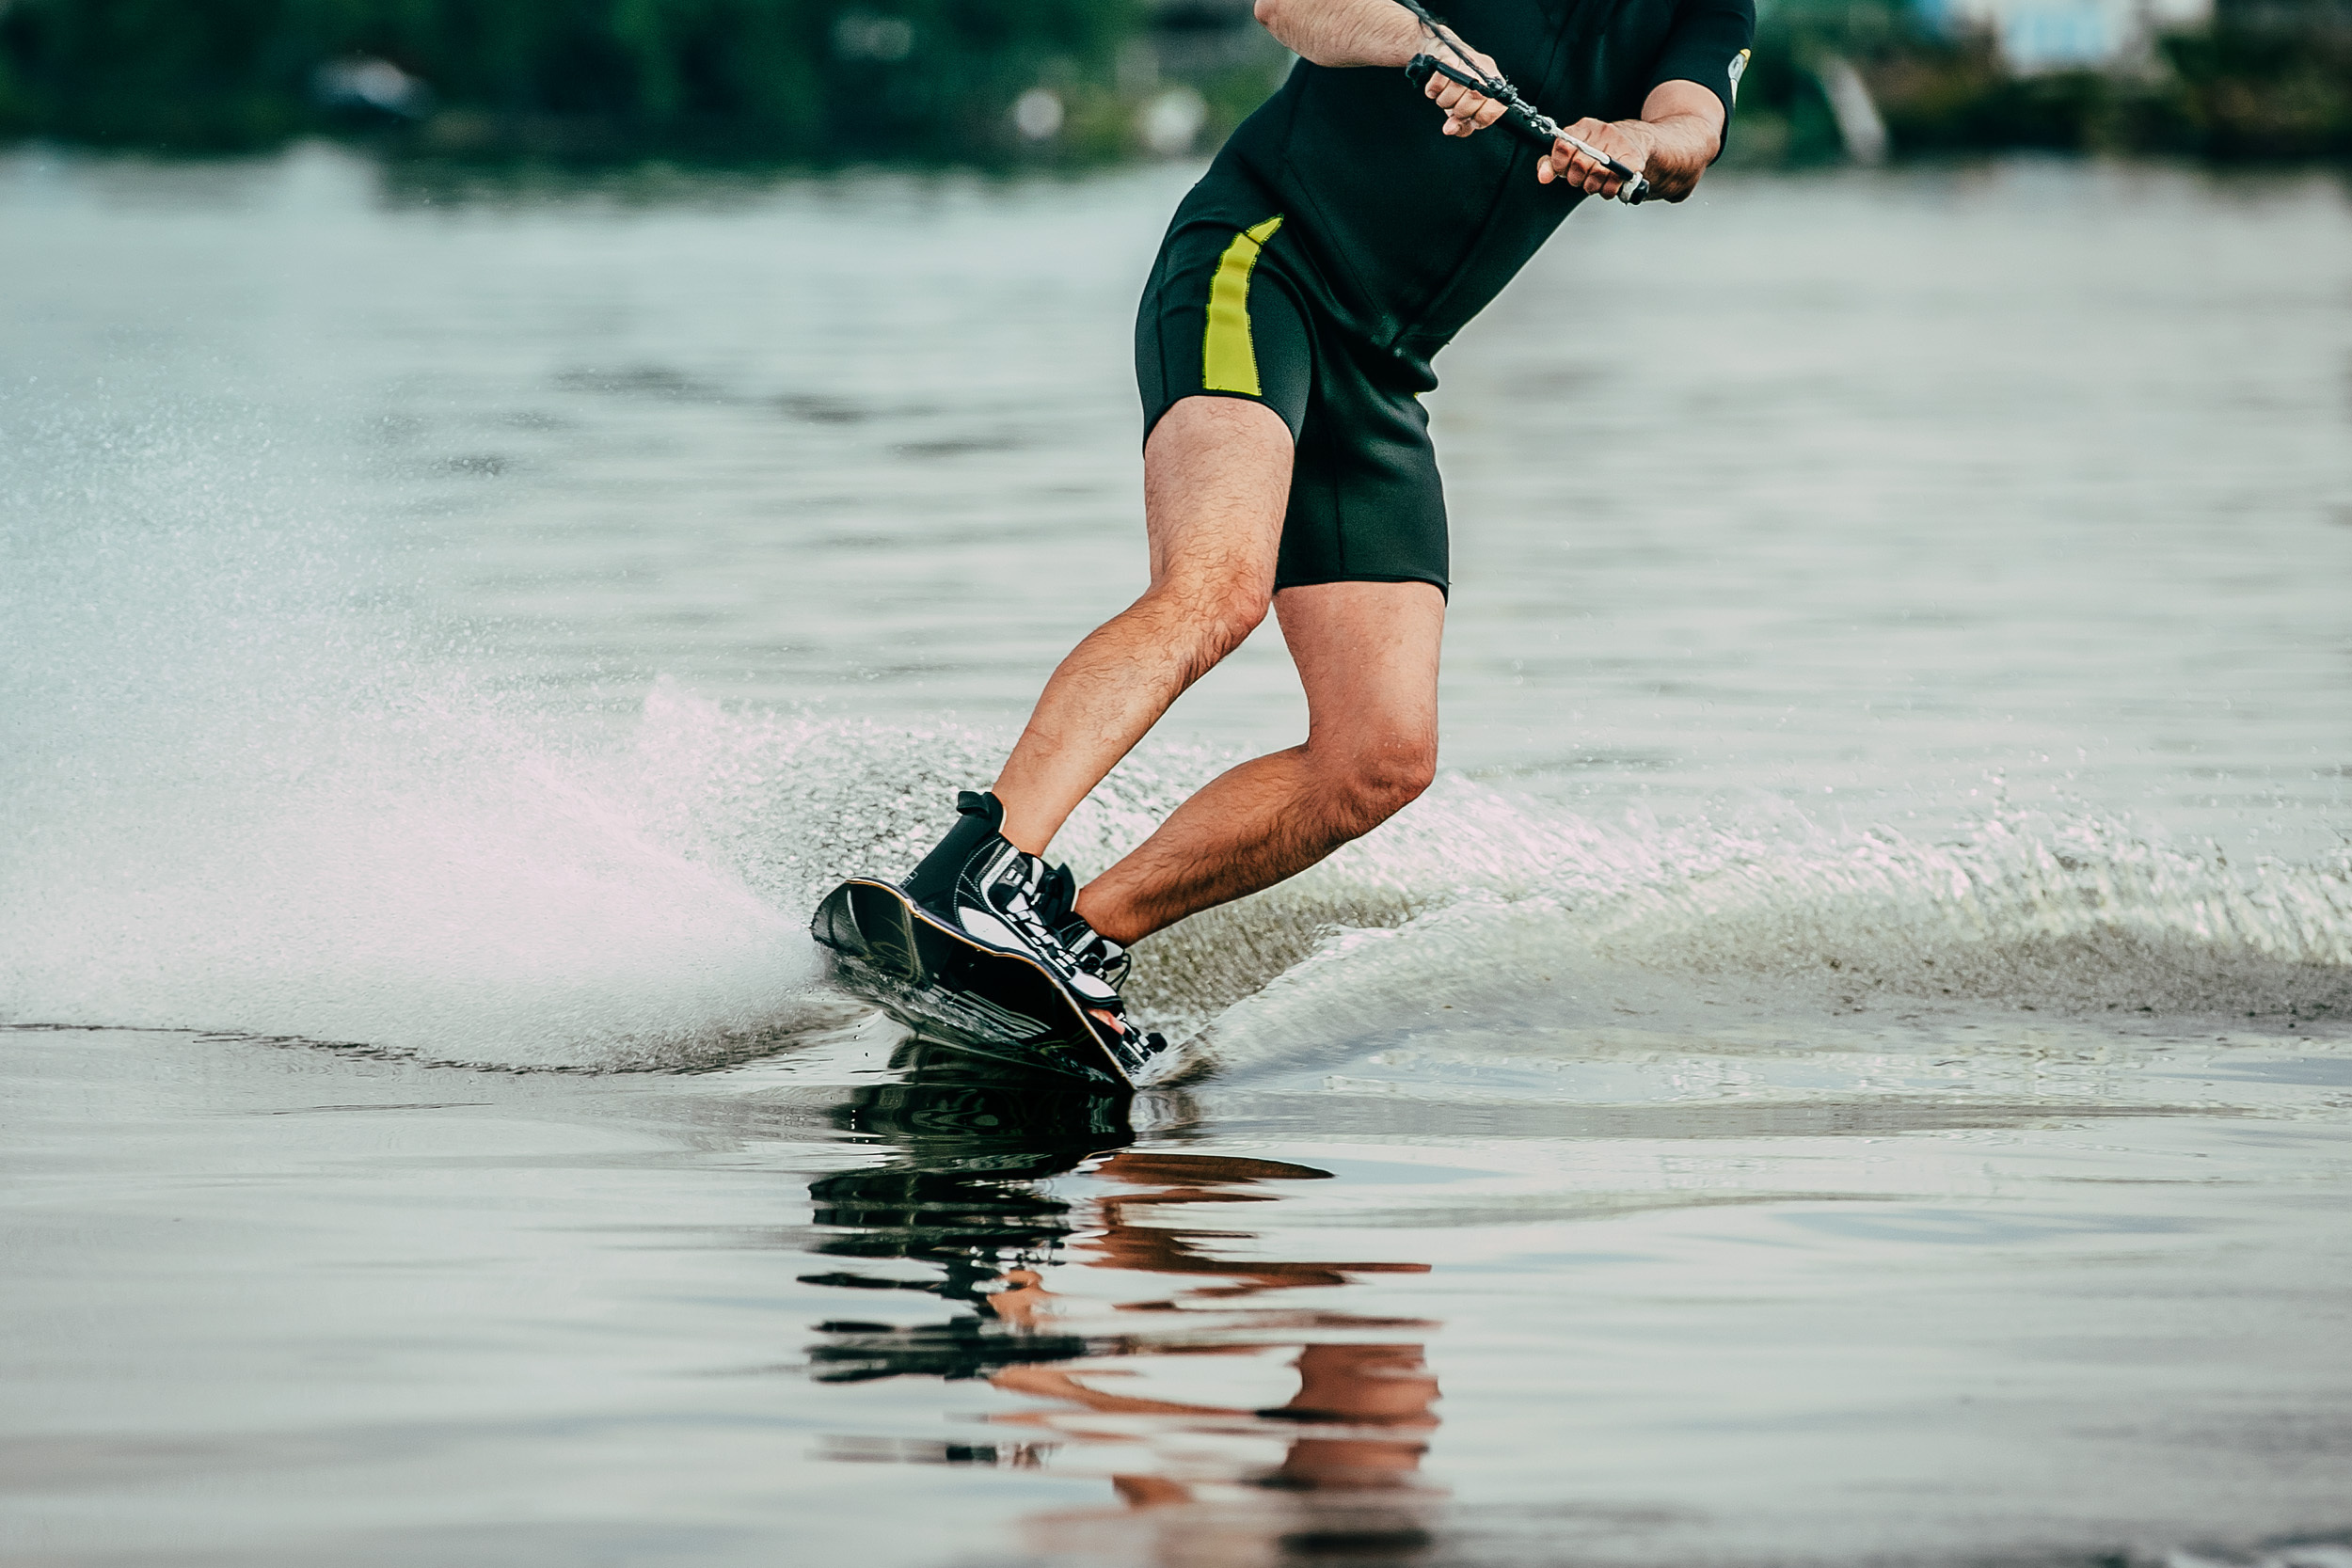 Top 3 U.S. Destinations for Wakeboarding Adventures